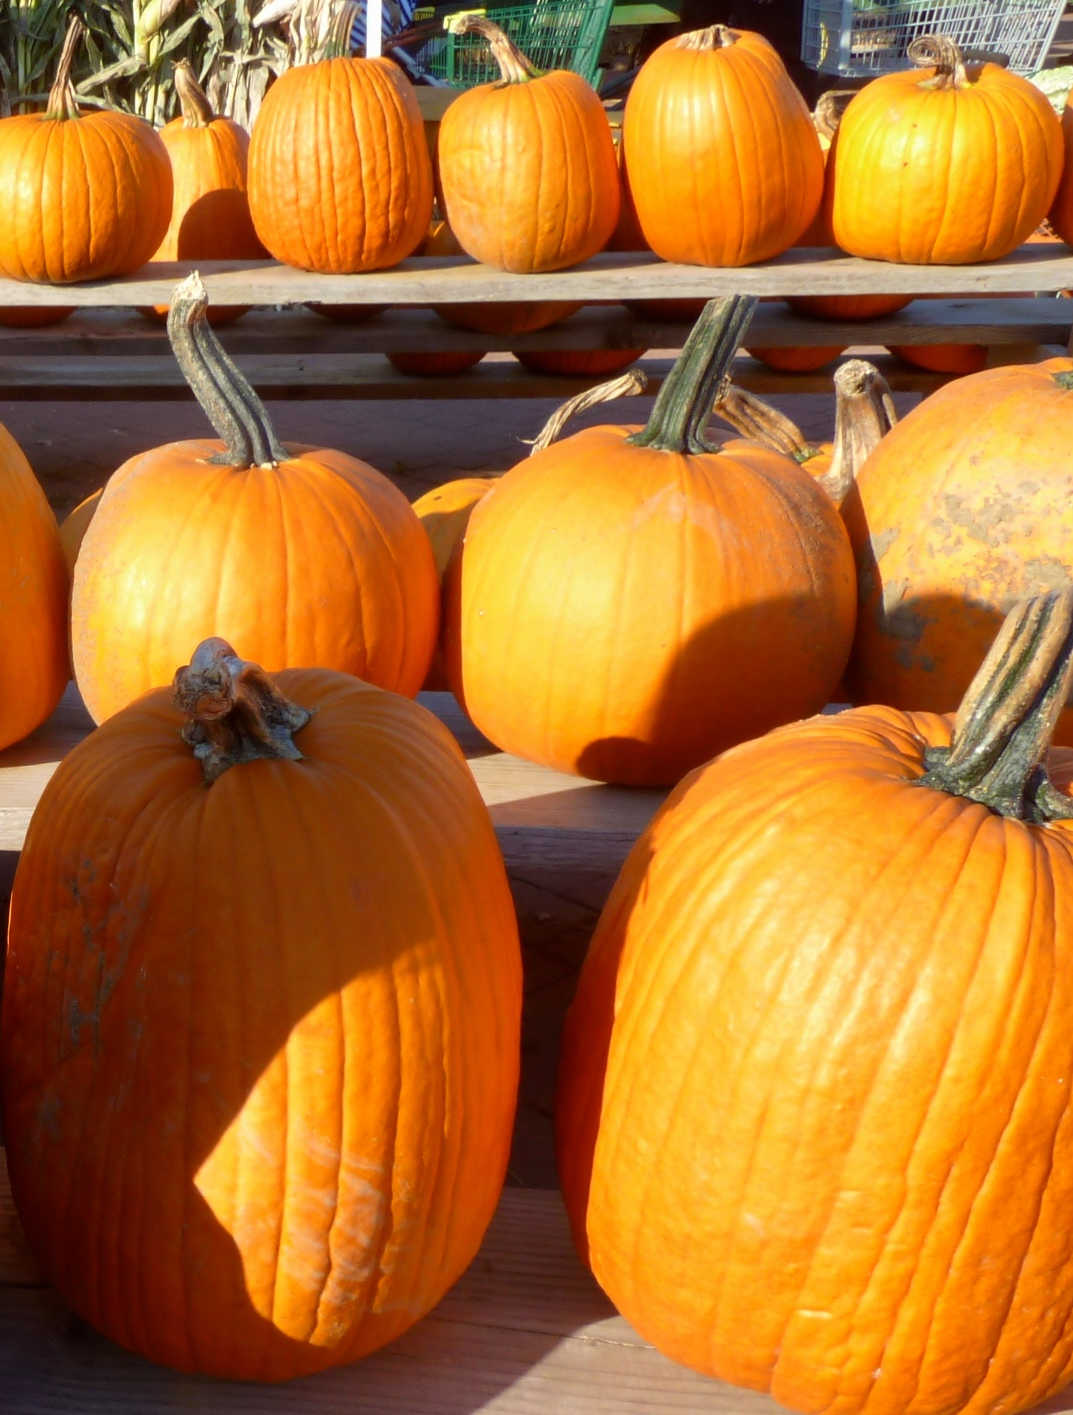 Create Fun Fall Memories: 16 Ways to Enjoy Autumn With Your Family